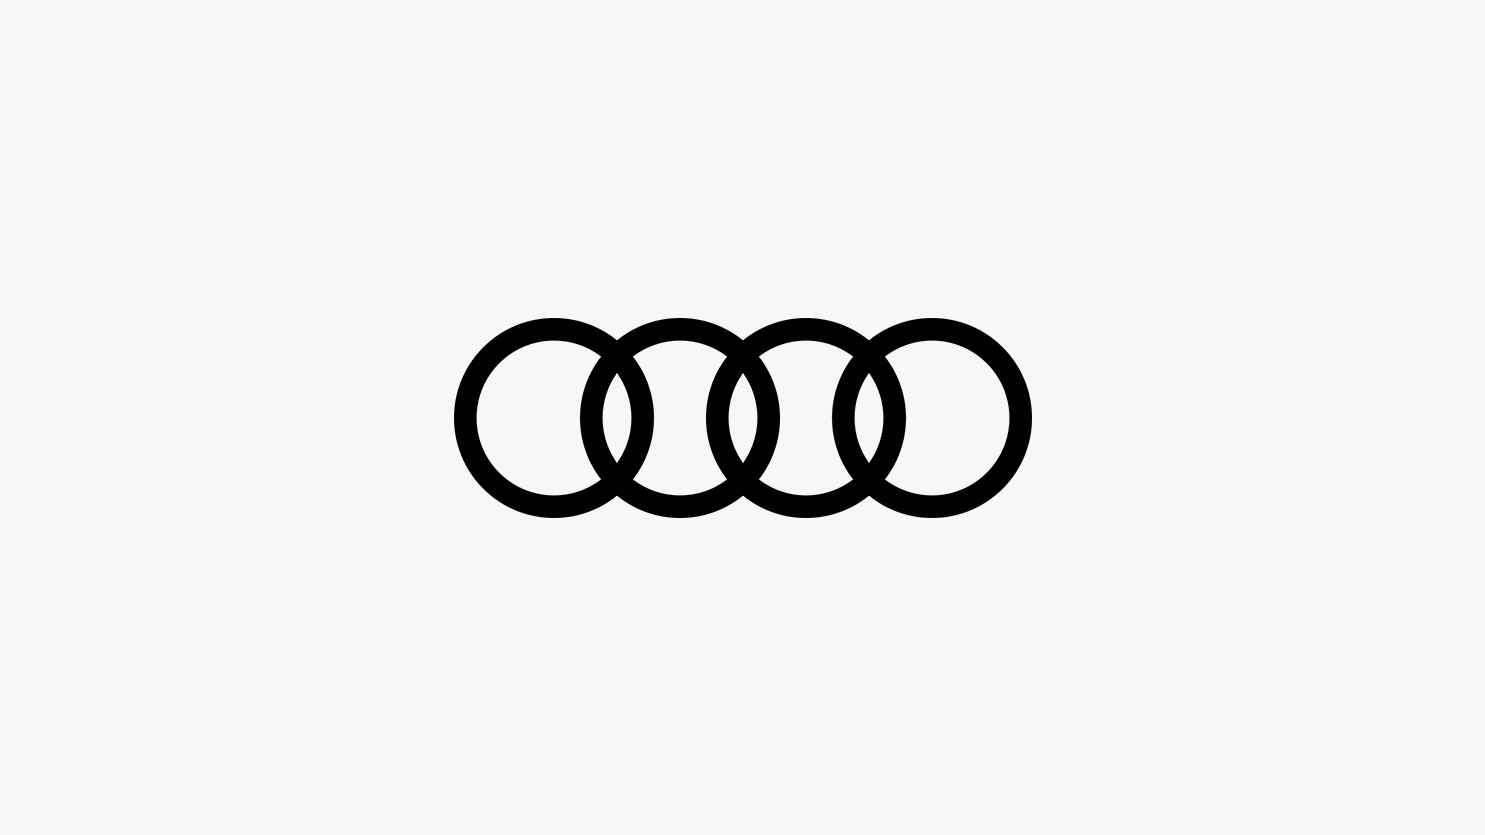 Audi project - Professional work